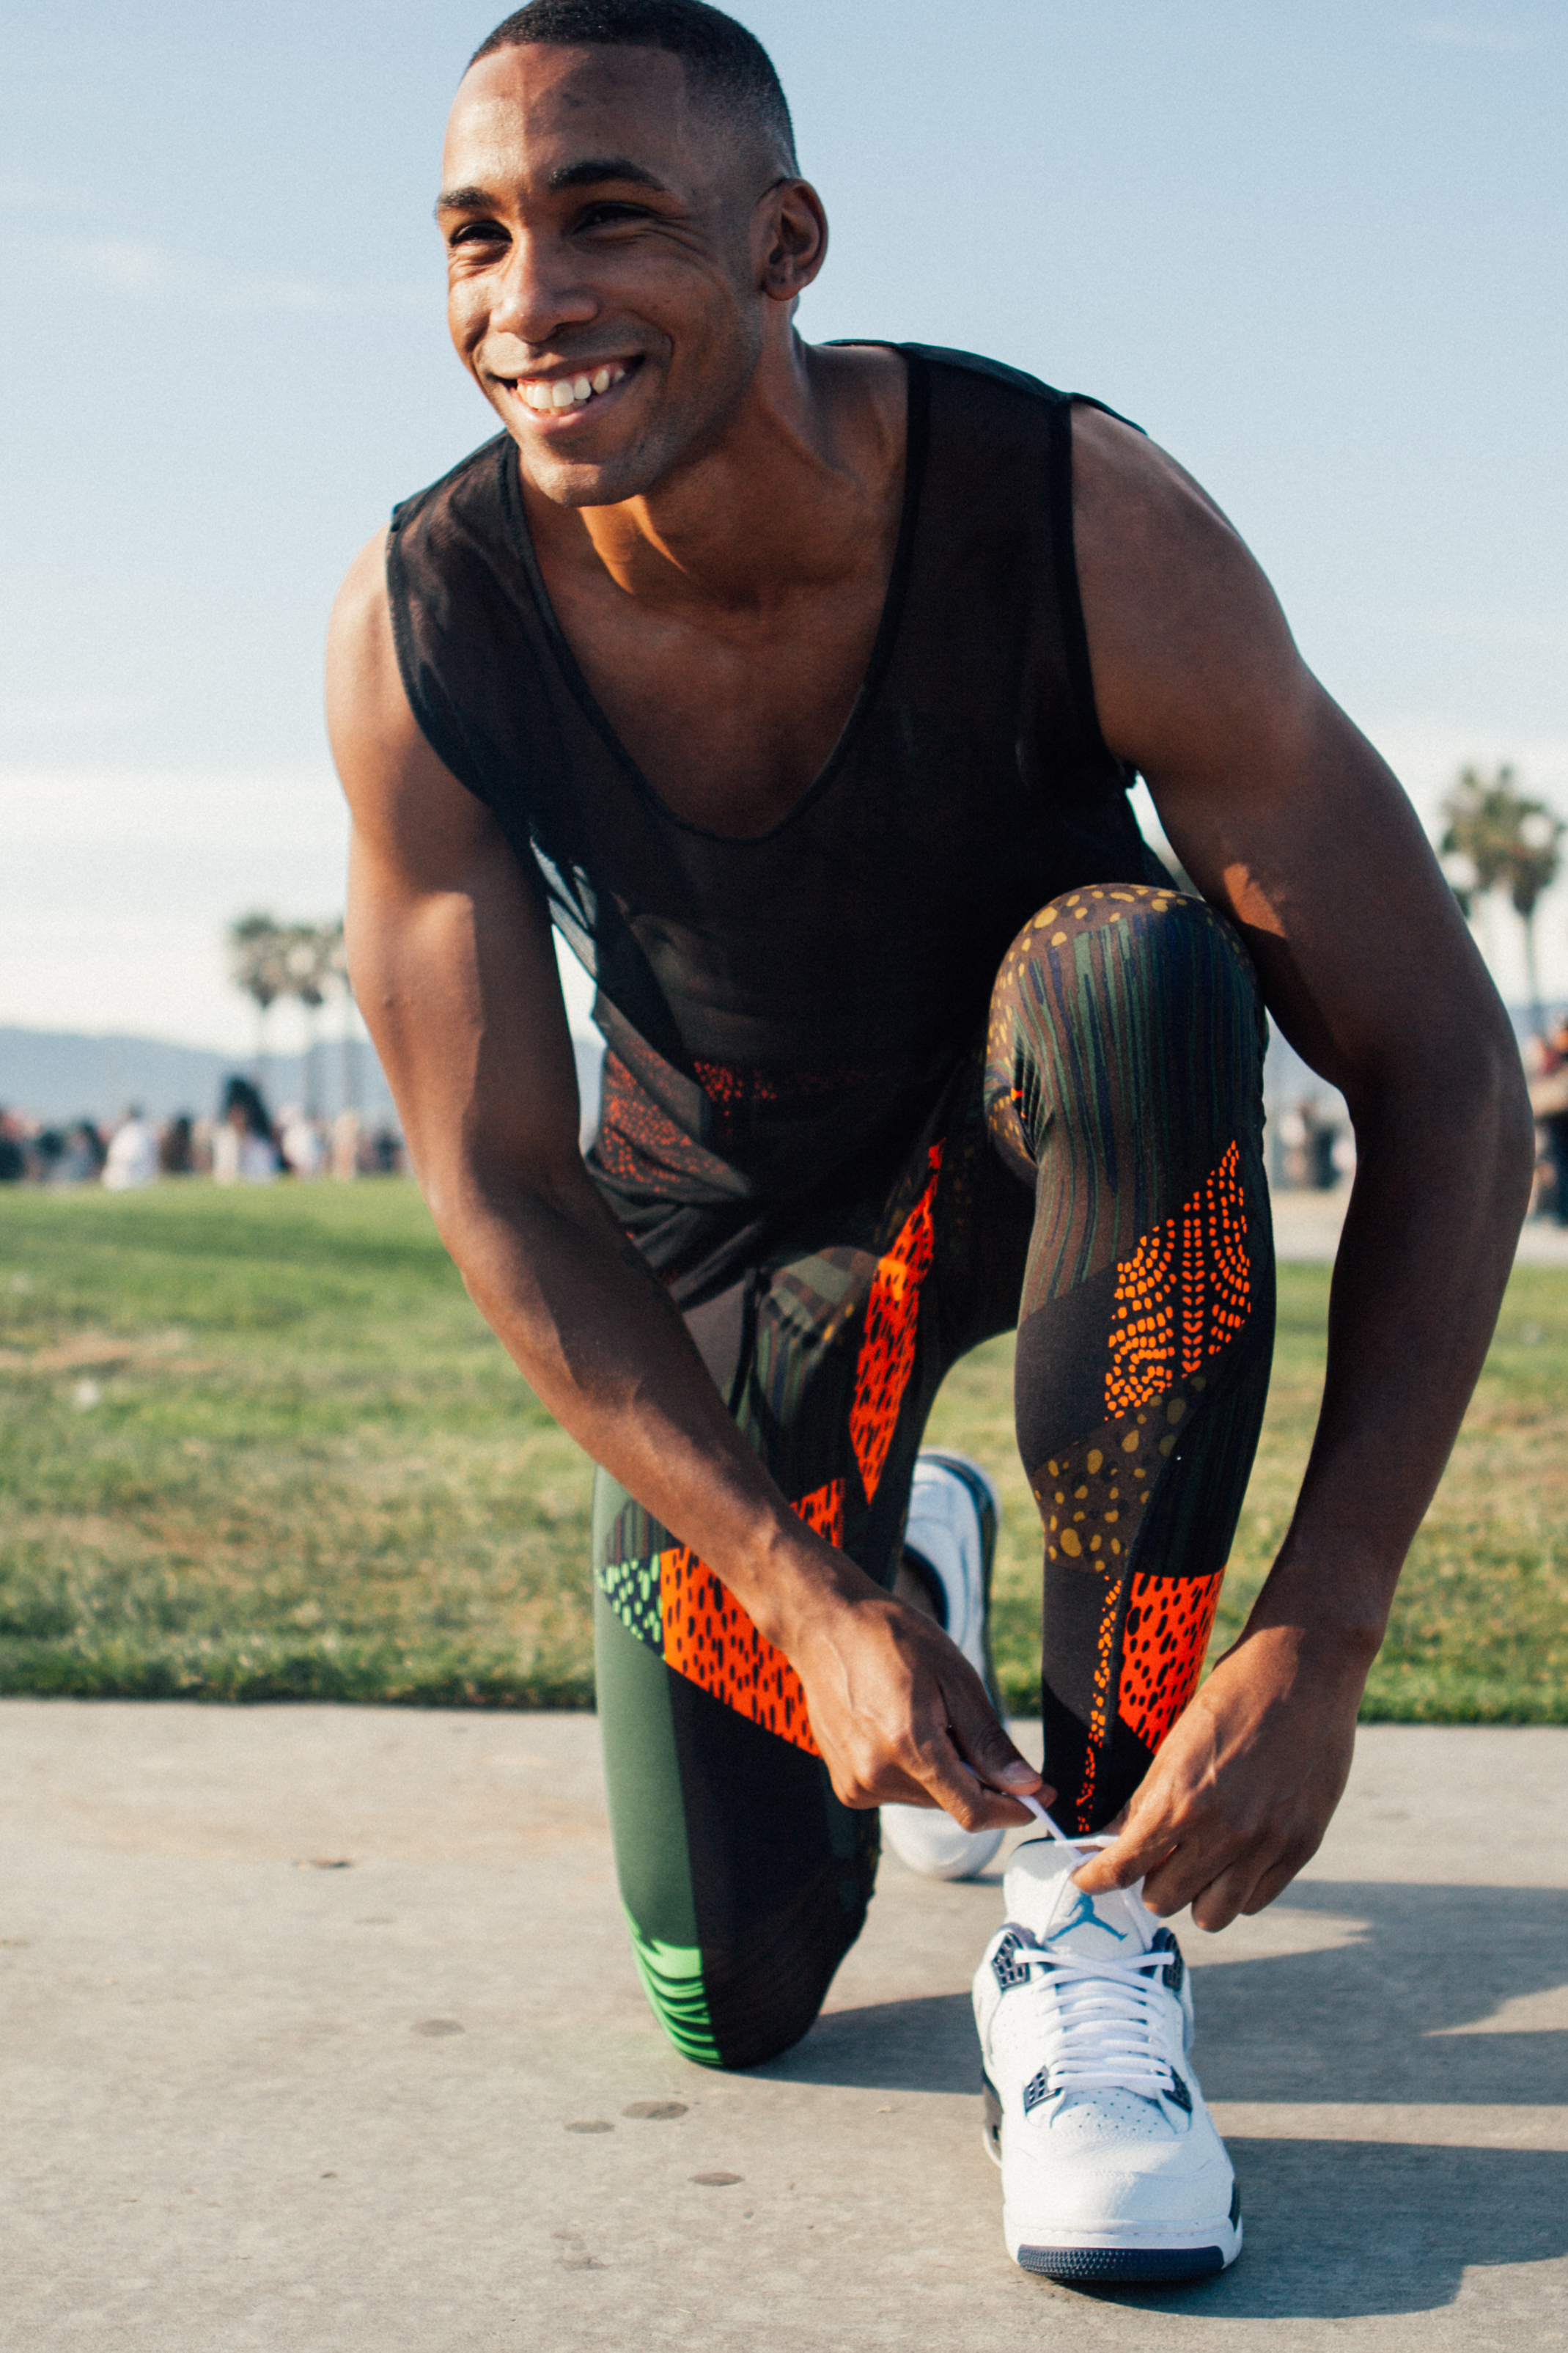 Lifestlye Workout Photography Session Venice Beach with Gary LaVard